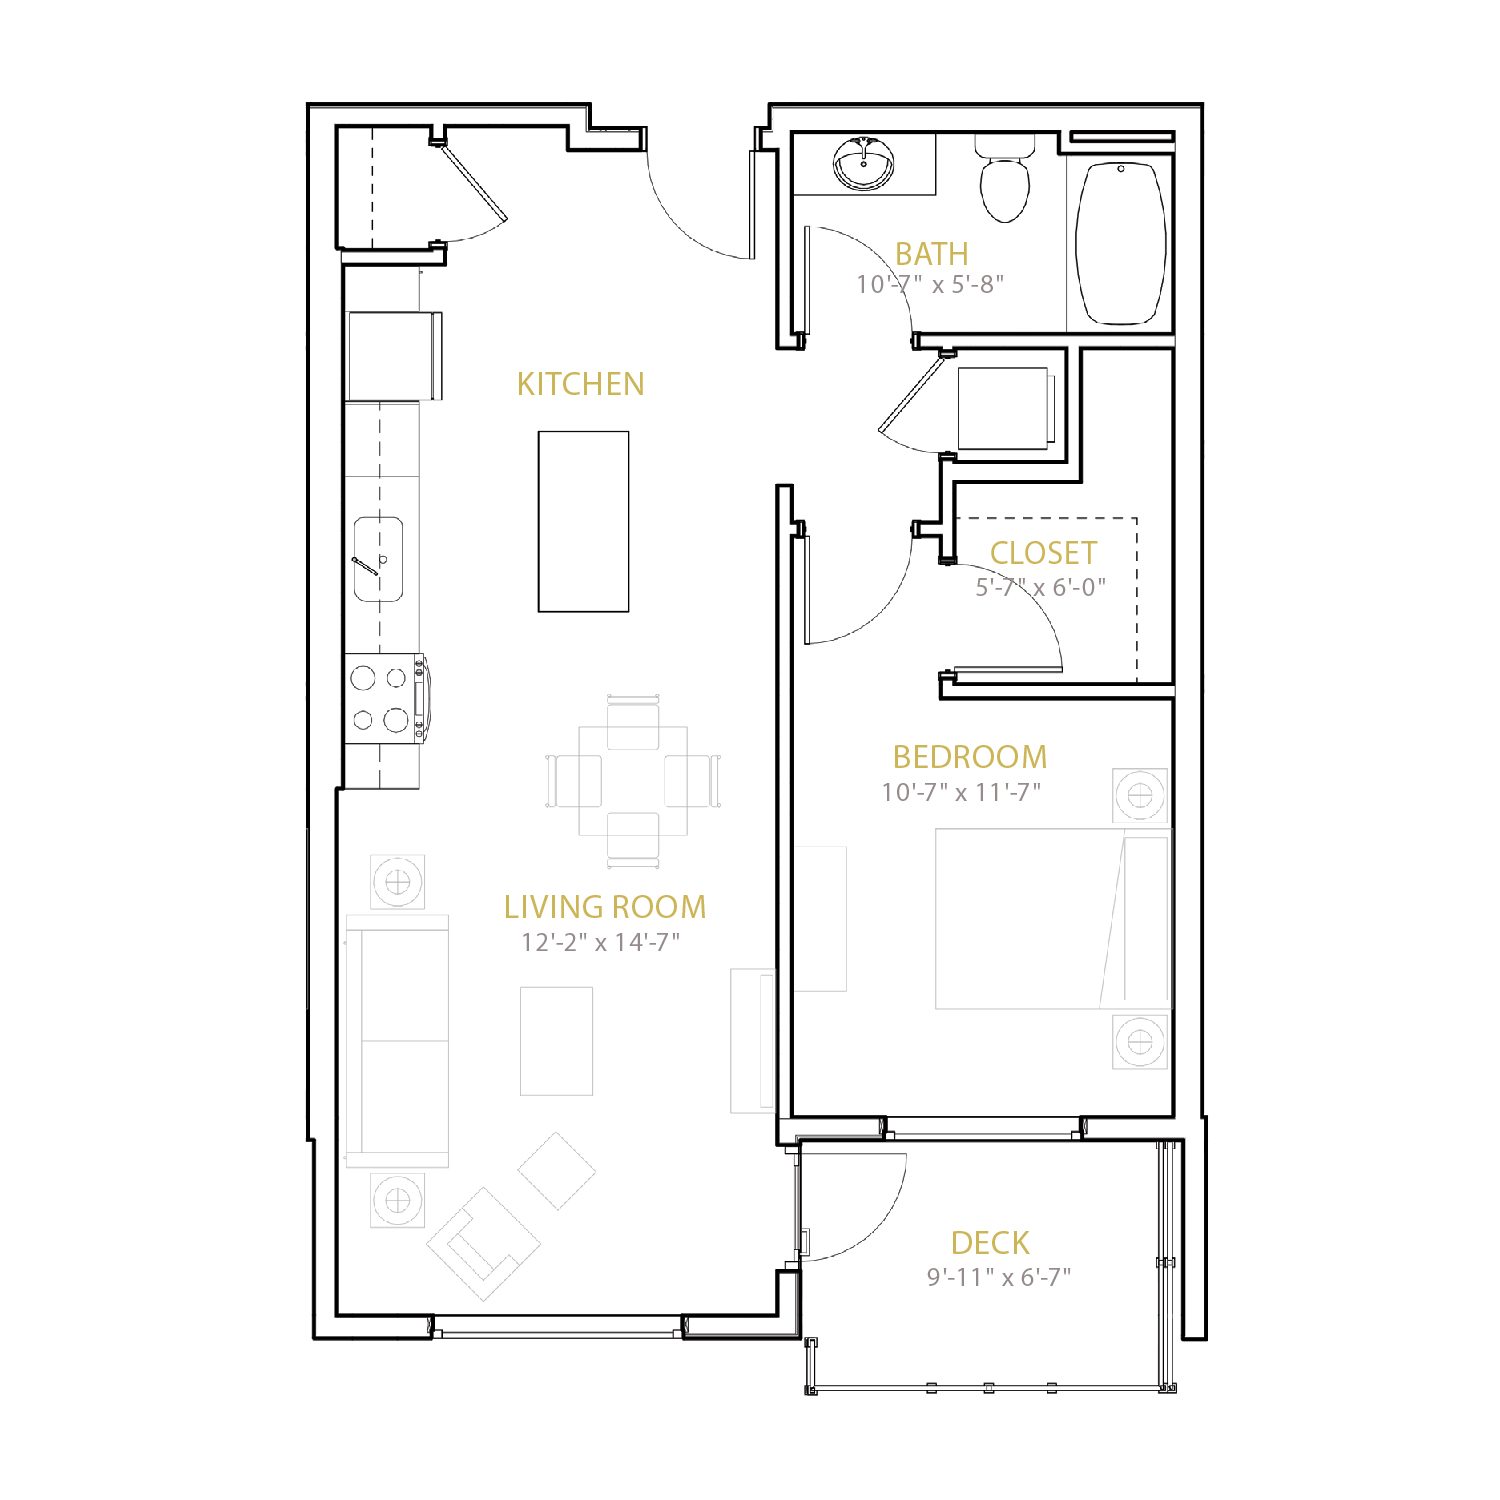 B Three floor plan diagram. One bedroom, one bathroom, an open kitchen and living area, and a deck.